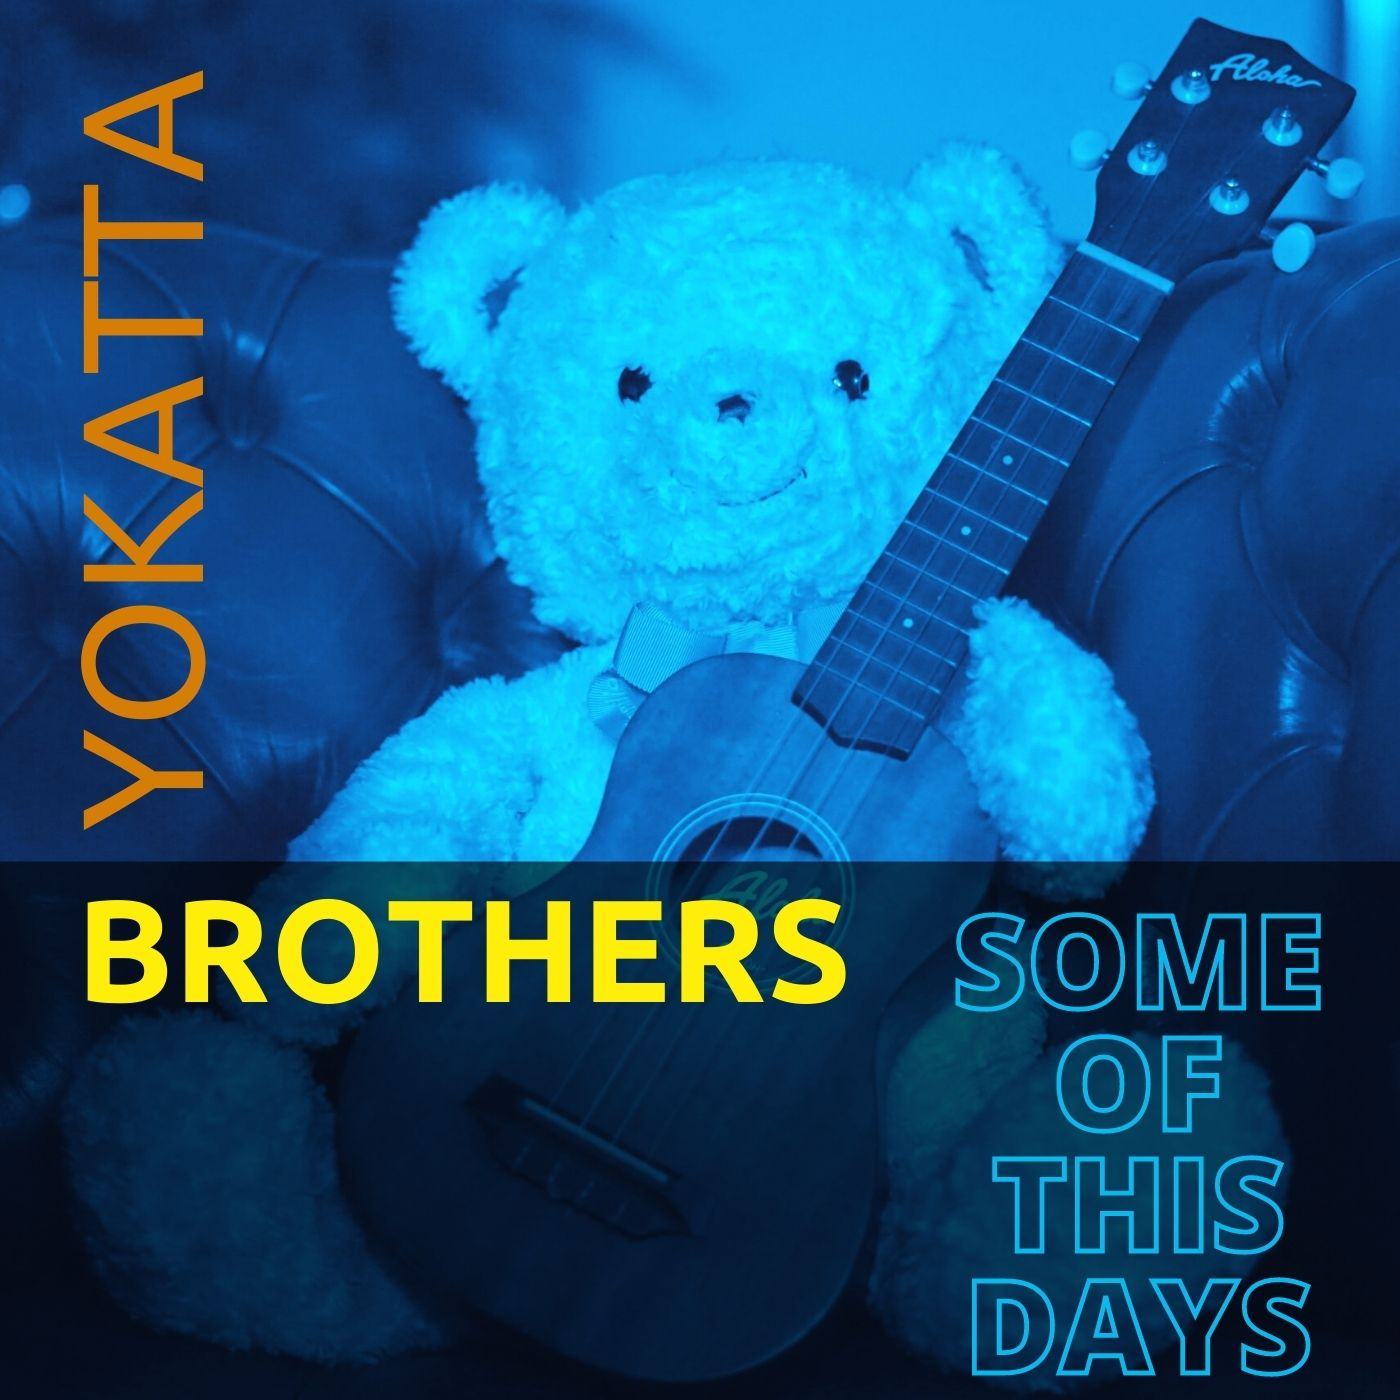 Some of this days by Yokatta Brothers